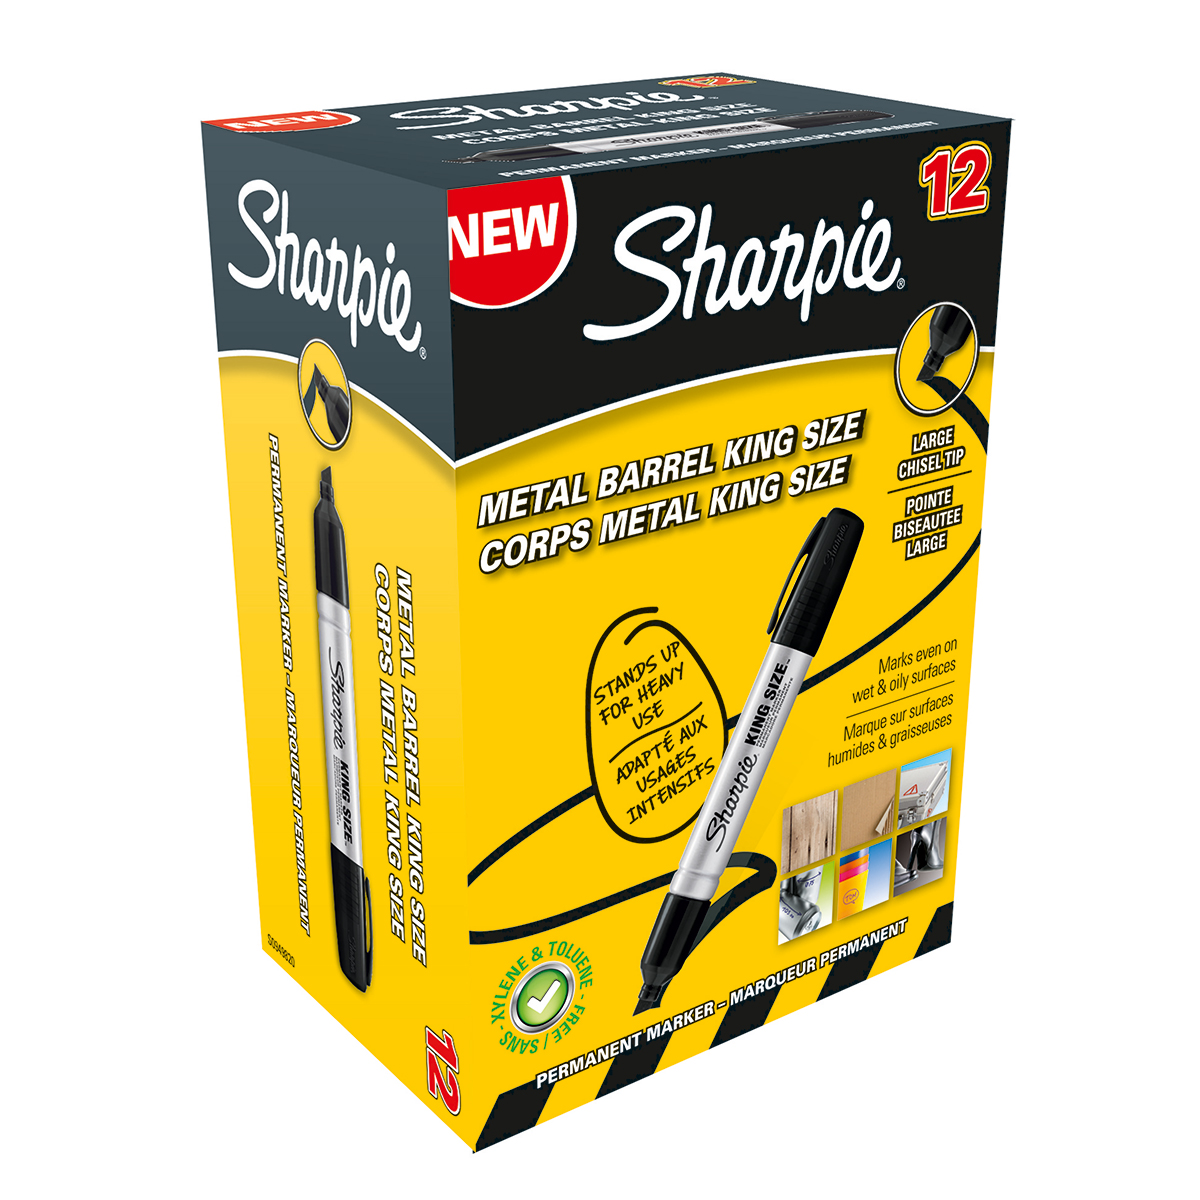 Sharpie S0949820 Metal Barrel King Medium Chisel Black Pack of 12